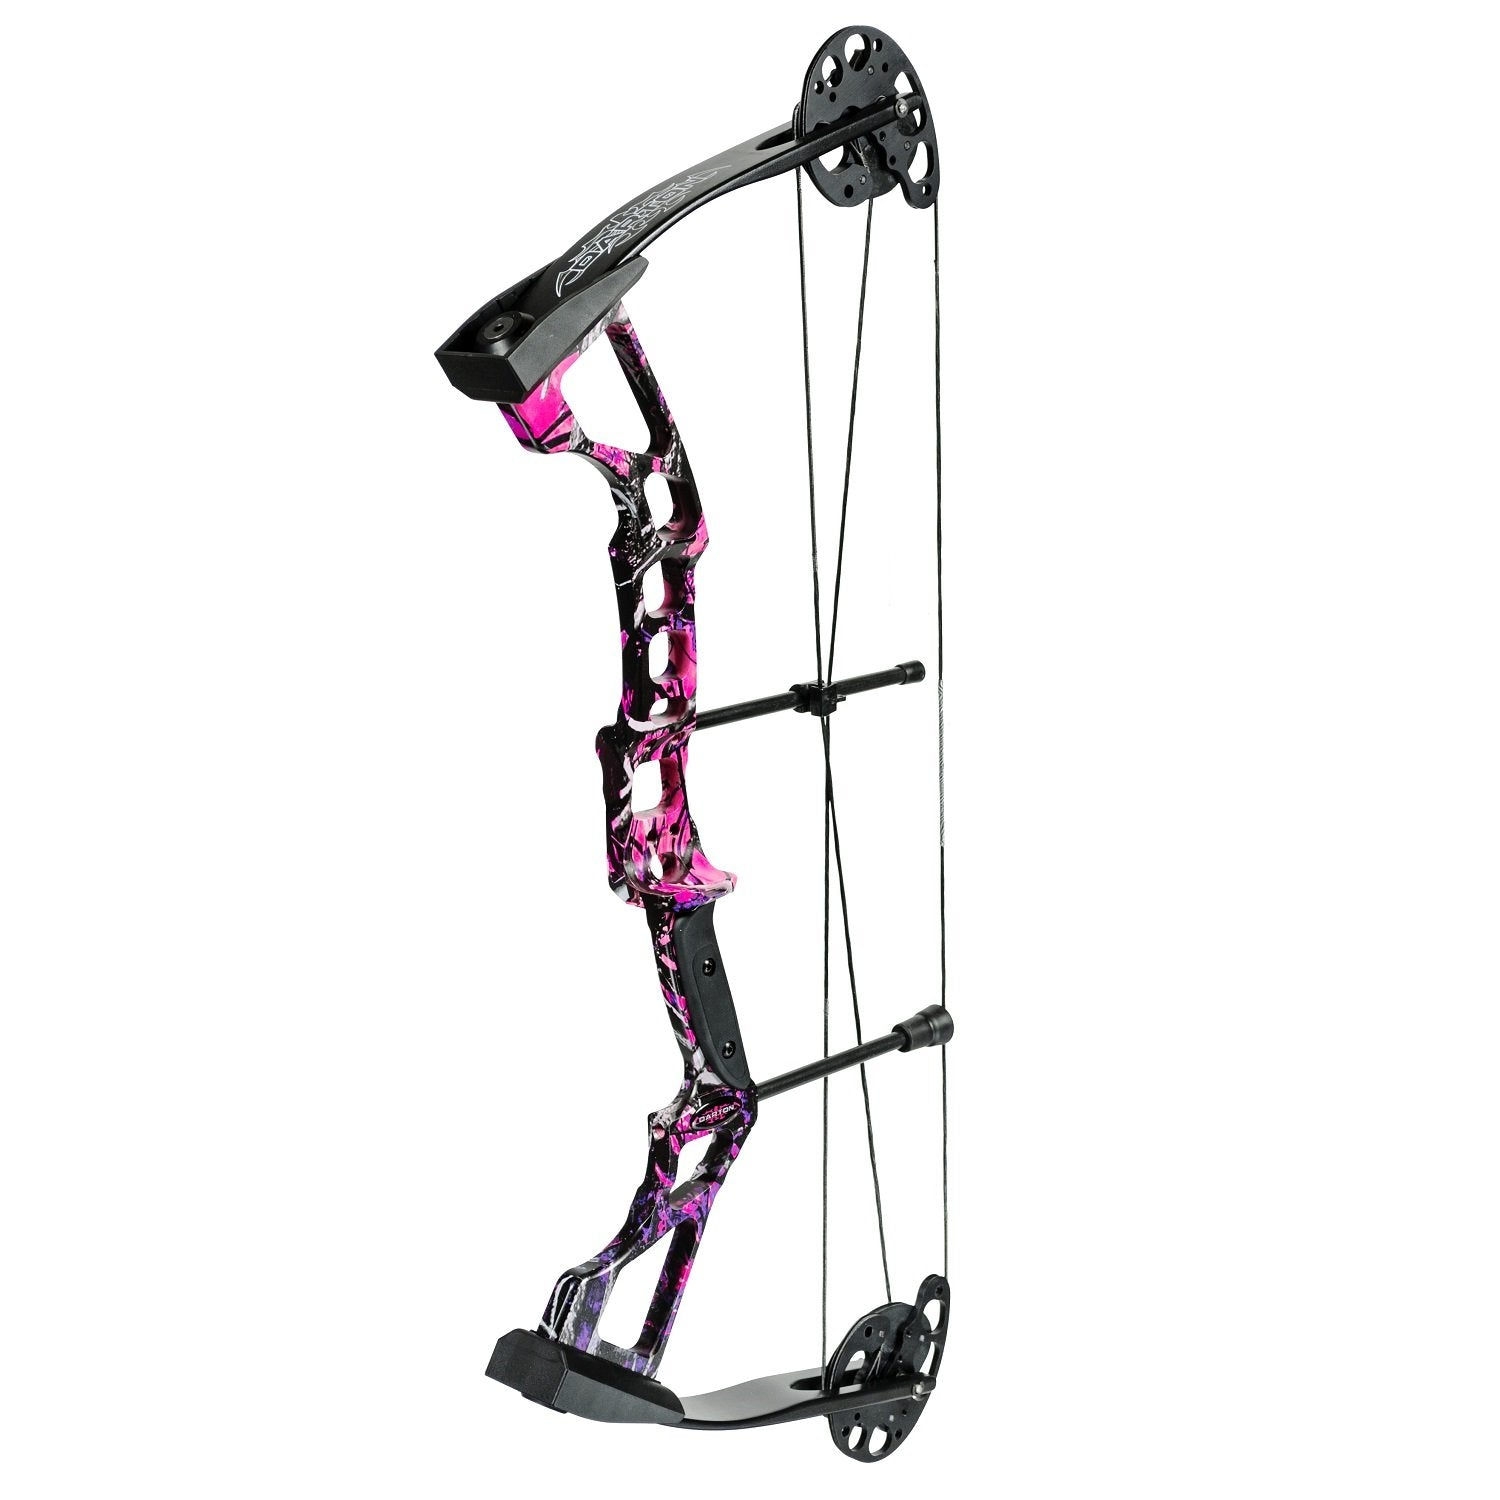 Darton Recruit Youth Compound Bow Pkg Muddy Girl 35-50lb RH